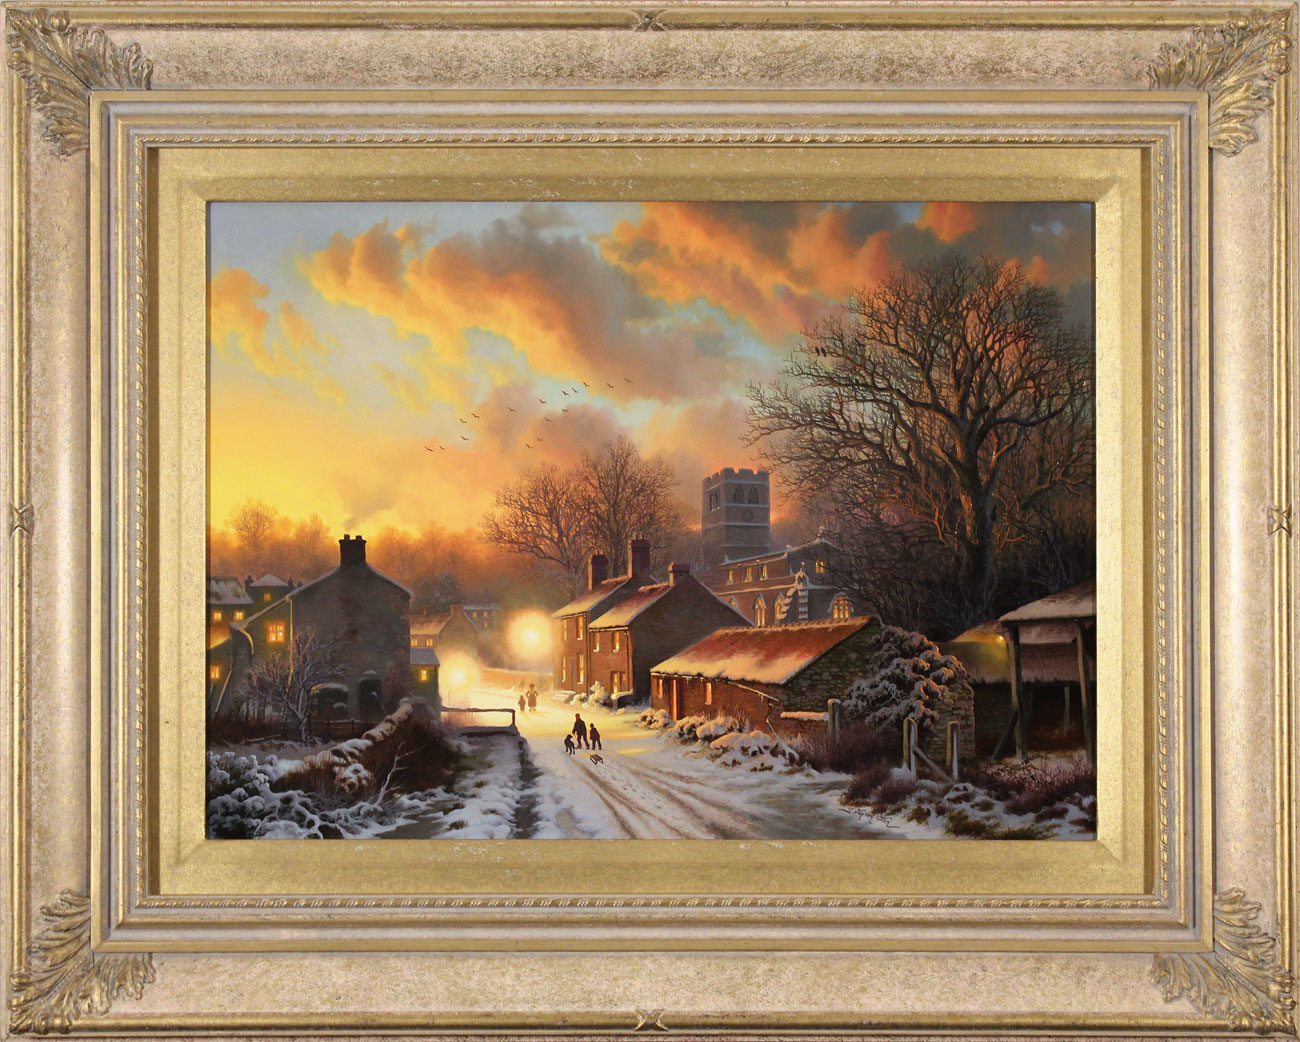 Daniel Van Der Putten, Original oil painting on panel, Sun Setting on Well, North Yorkshire Click to enlarge